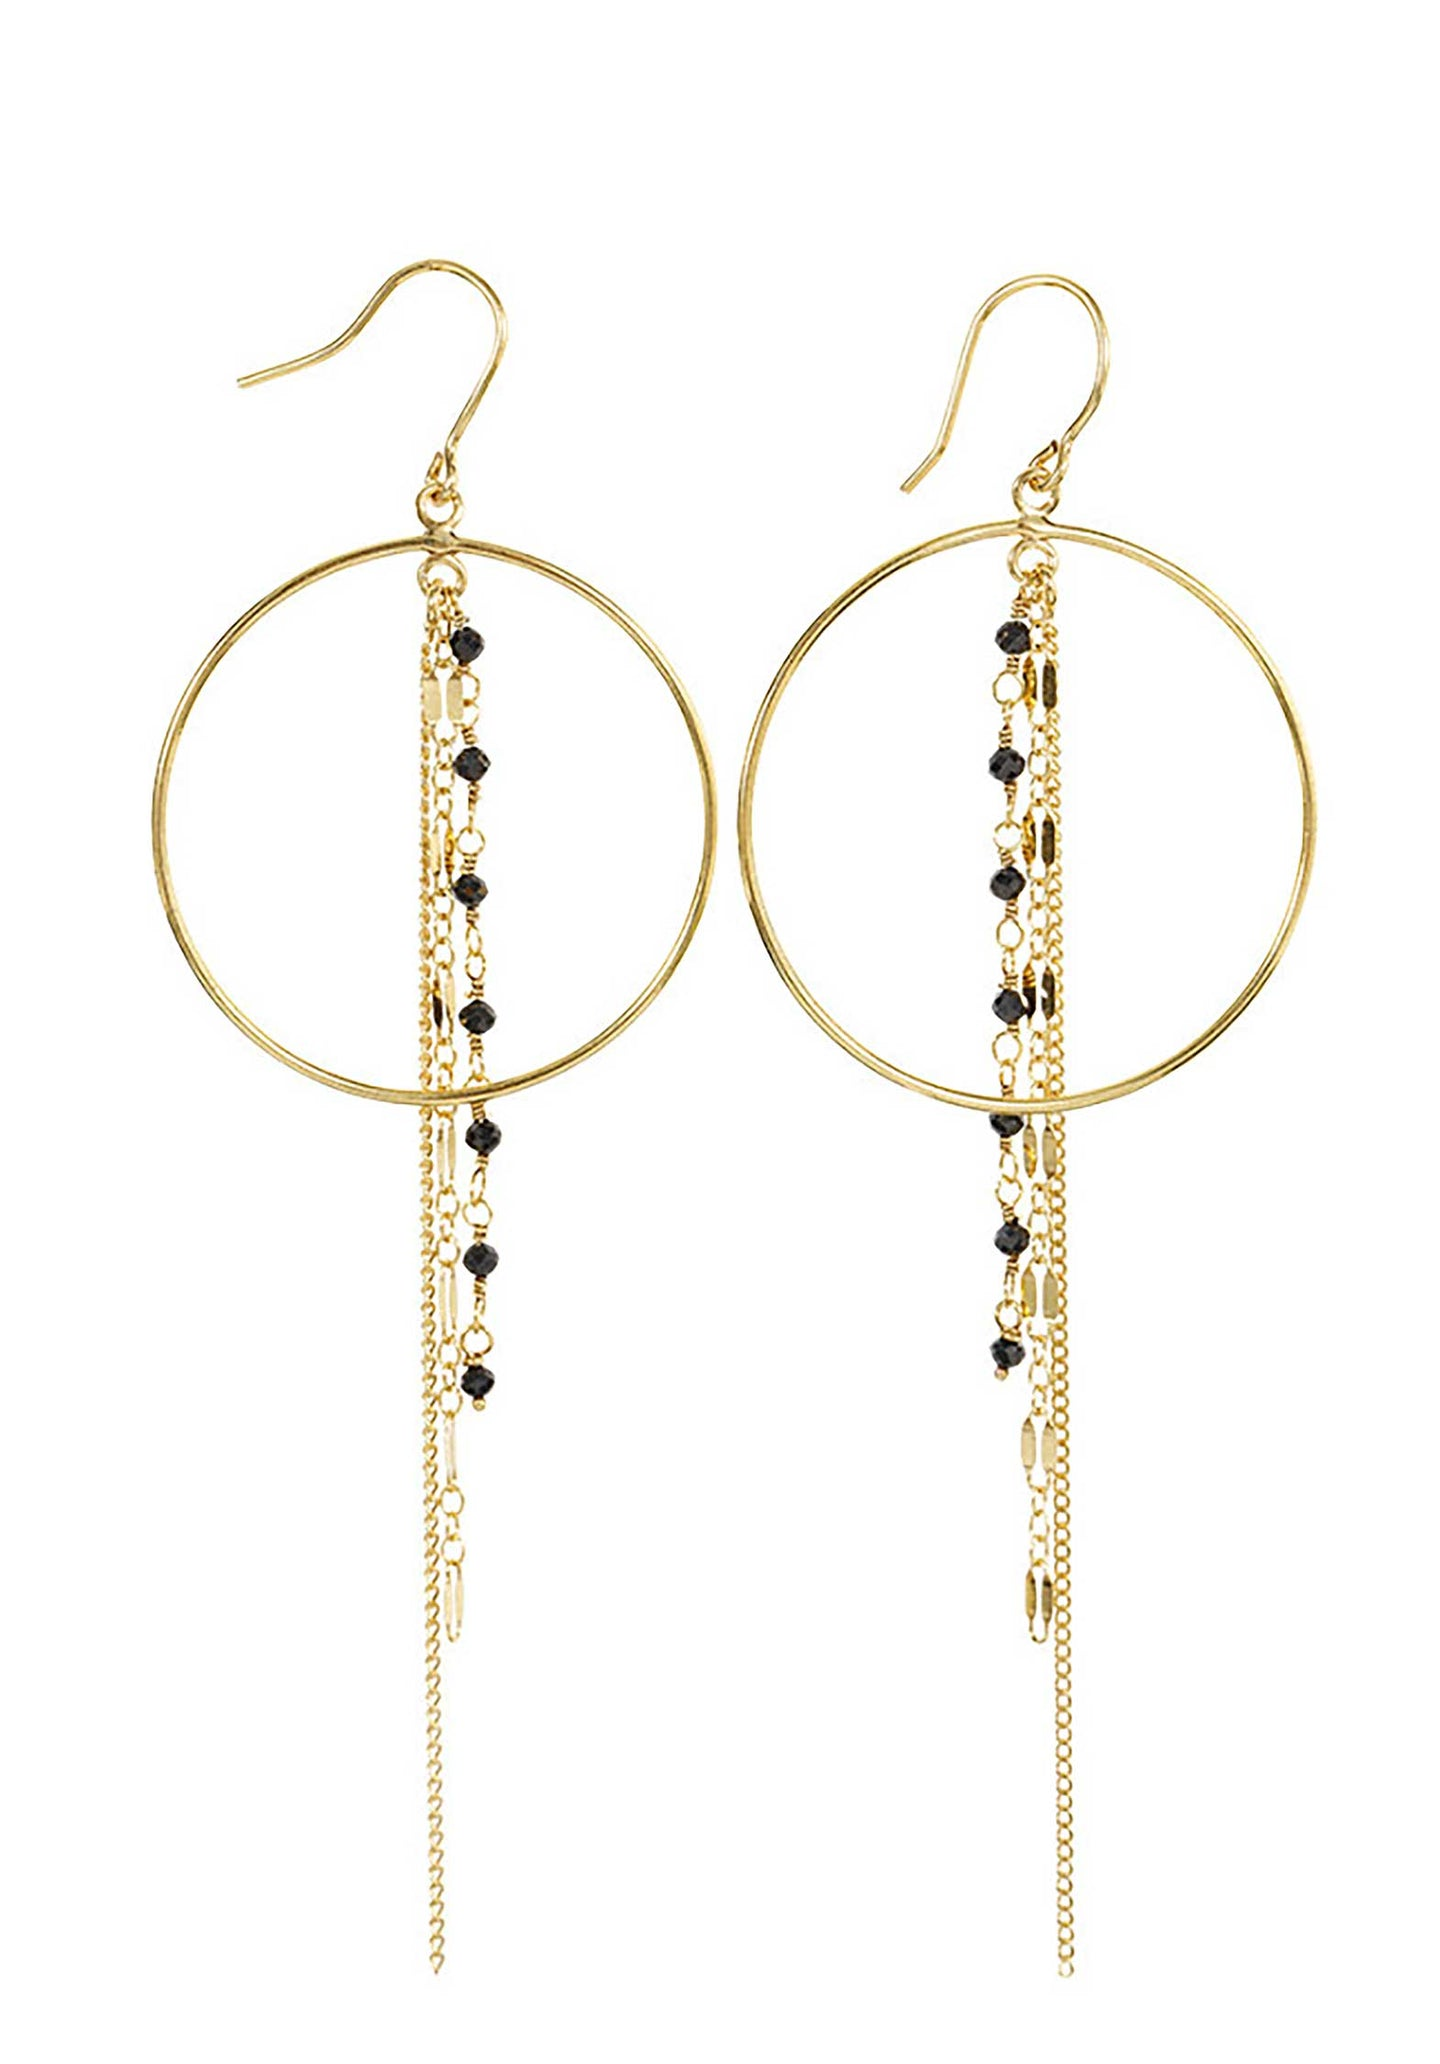 18K Gold Plated Circle Earrings Black-Onyx